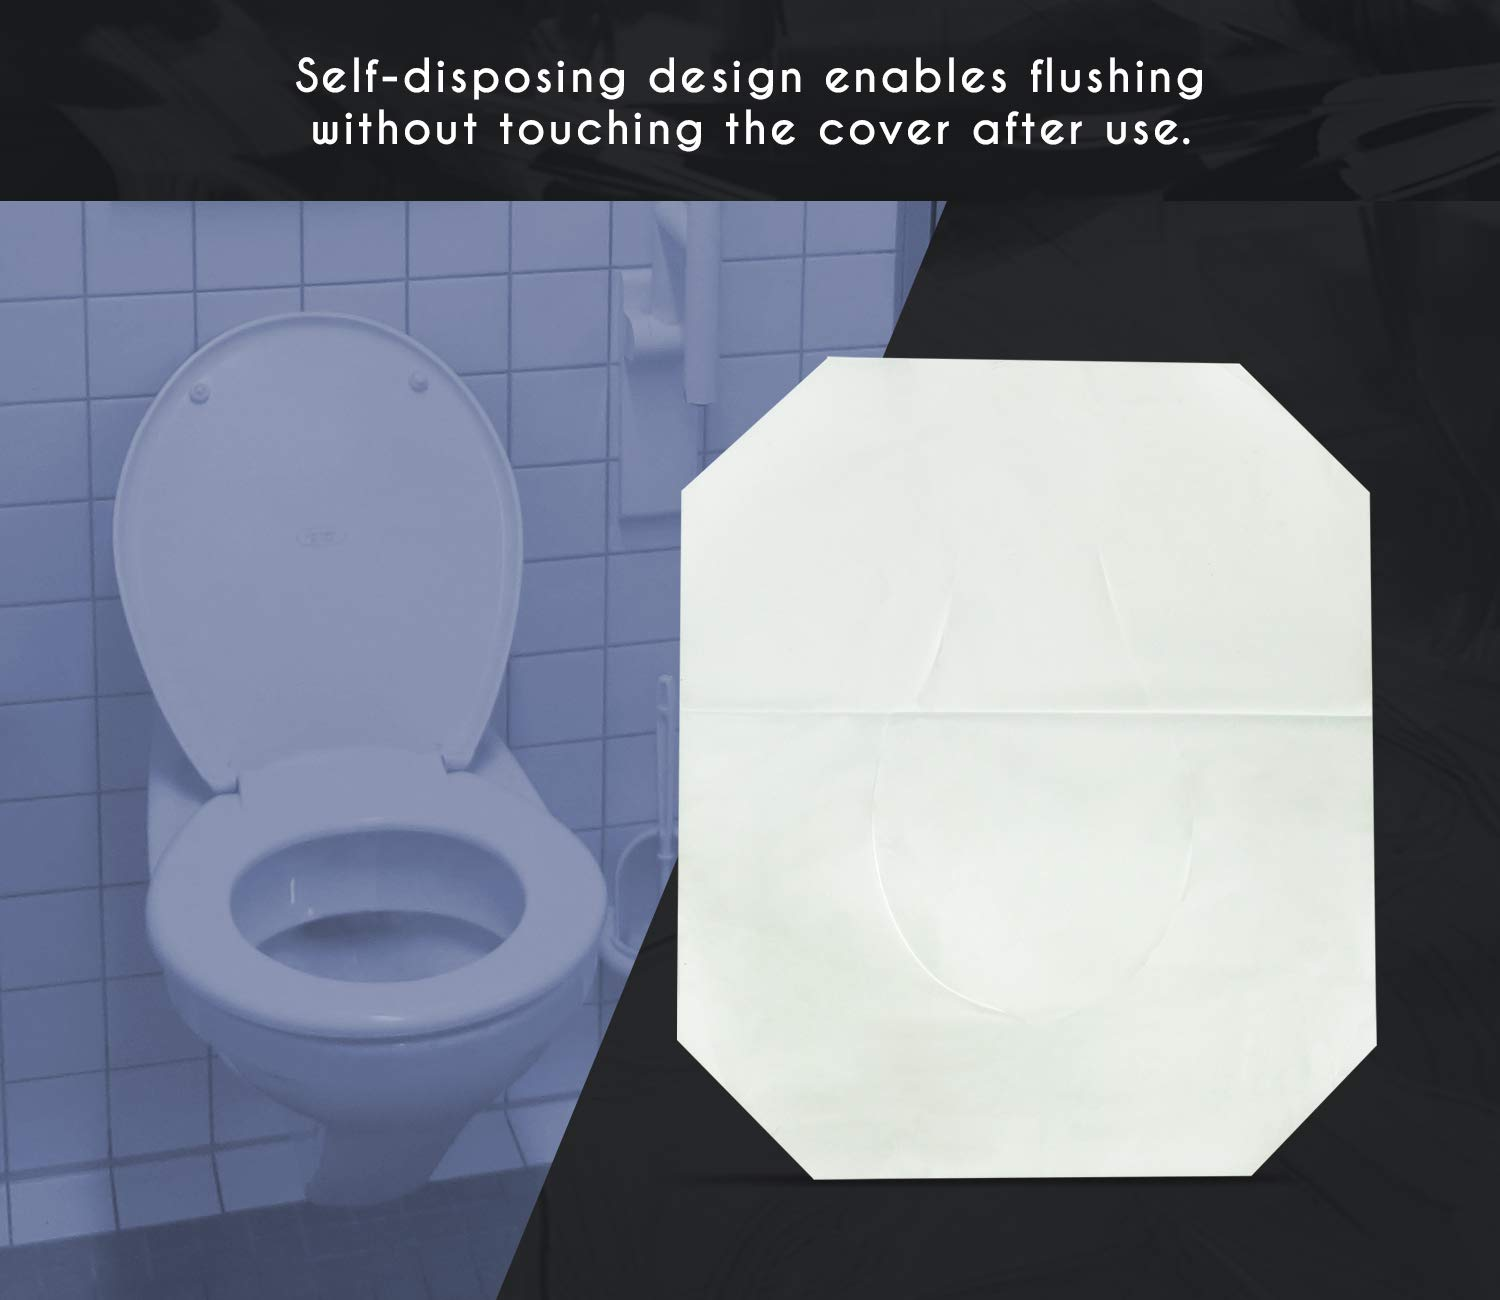 Paper Toilet Seat Covers - Disposable - Half-Fold Toilet Seat Cover Dispensers - White - 4 Pack of 250-14''L x0.1''W x 16''H by Juvale (Image #5)